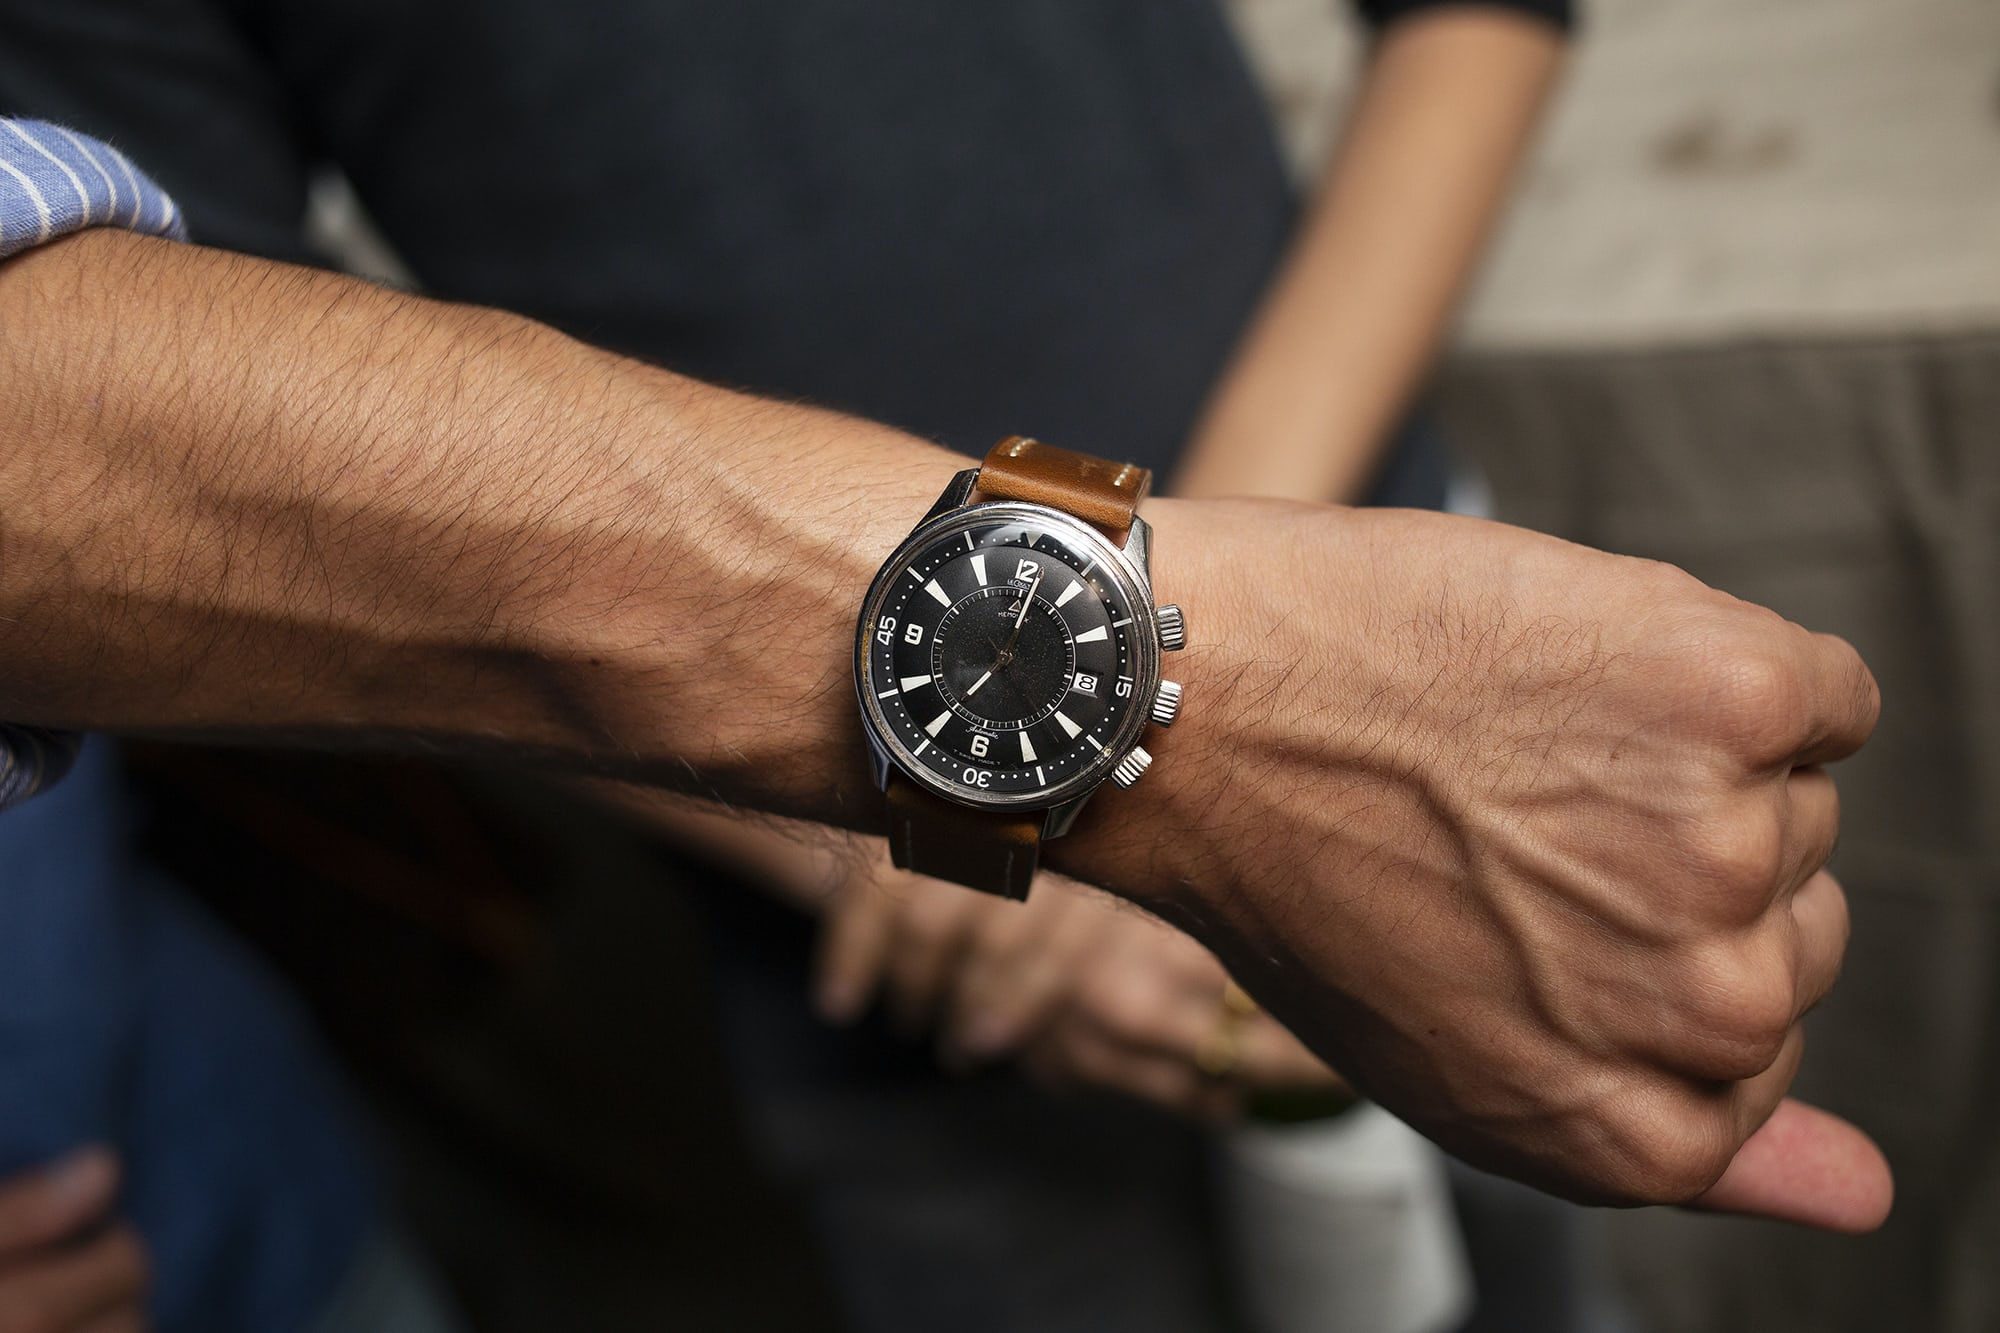 Photo Report: The Watches And Cars Of The HODINKEE Pop-Up At The UTA Artist Space In Los Angeles  3H0A0456 copy